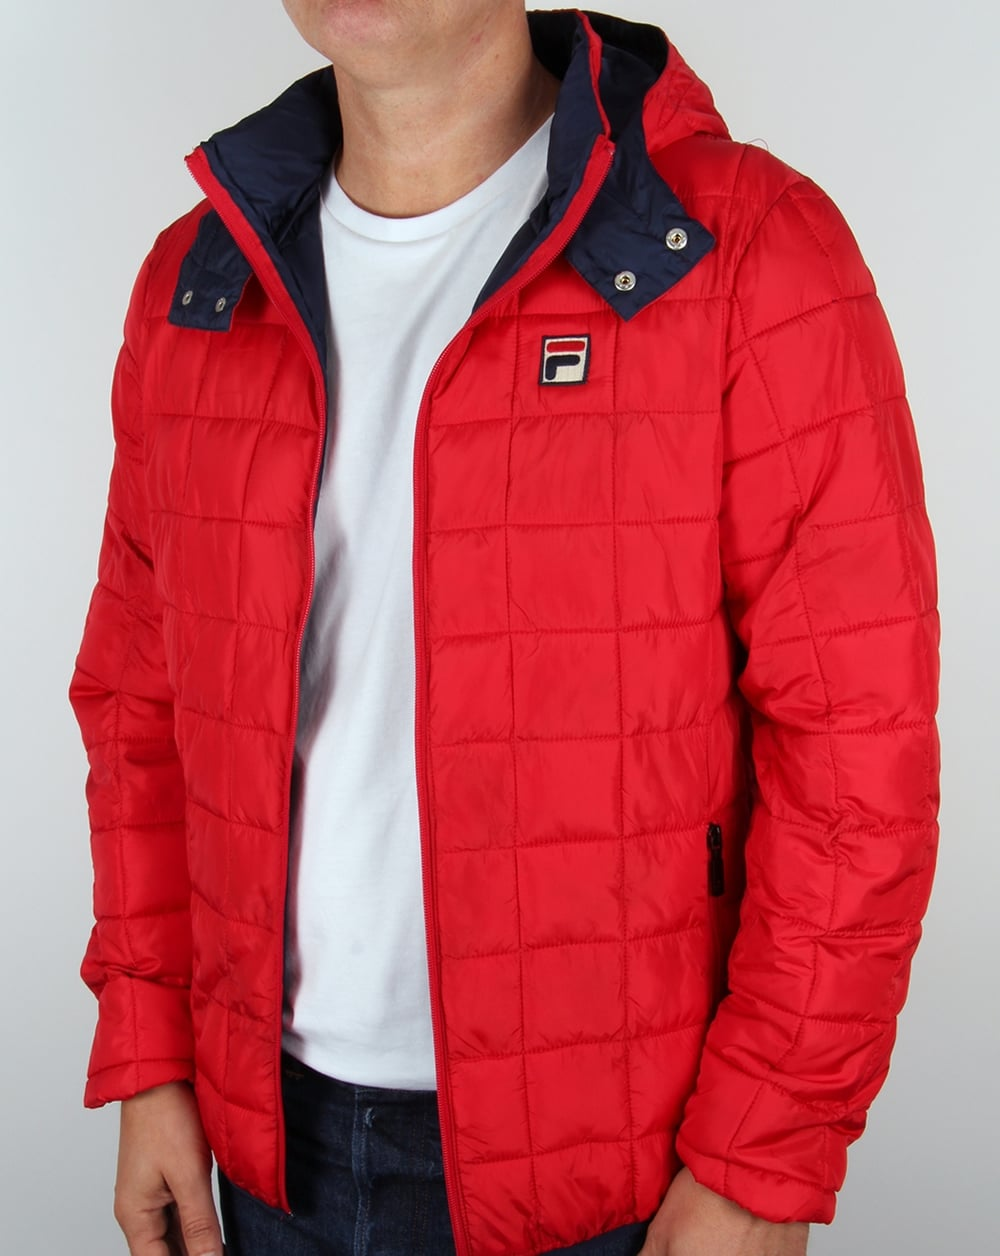 Fila Vintage Passo Quilted Jacket Red,coat,padded,hooded,mens : red quilted jacket mens - Adamdwight.com